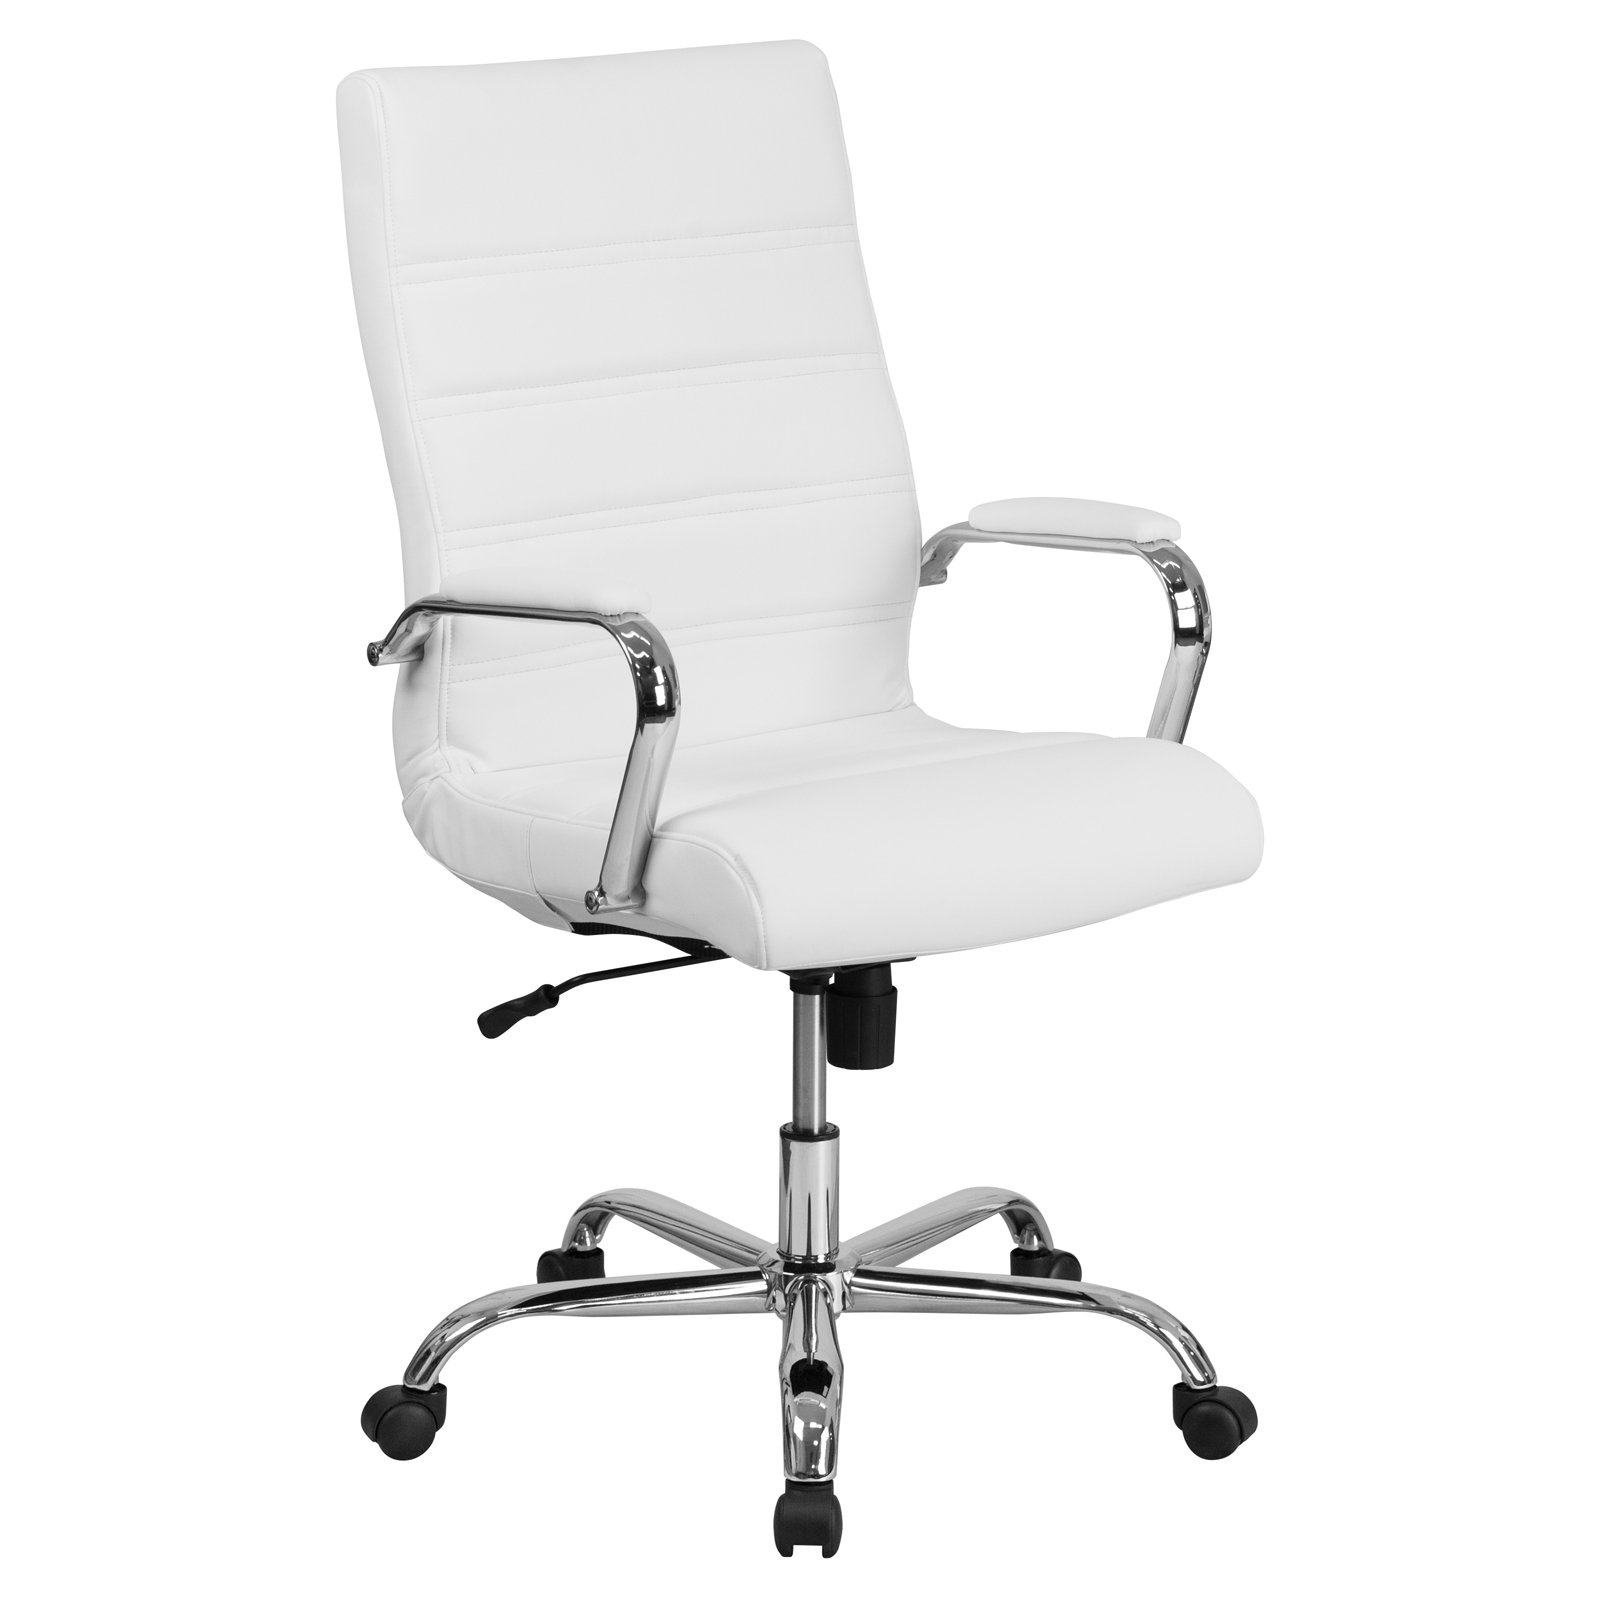 Product Image Flash Furniture High Back White Leather Executive Swivel Office Chair With Chrome Arms